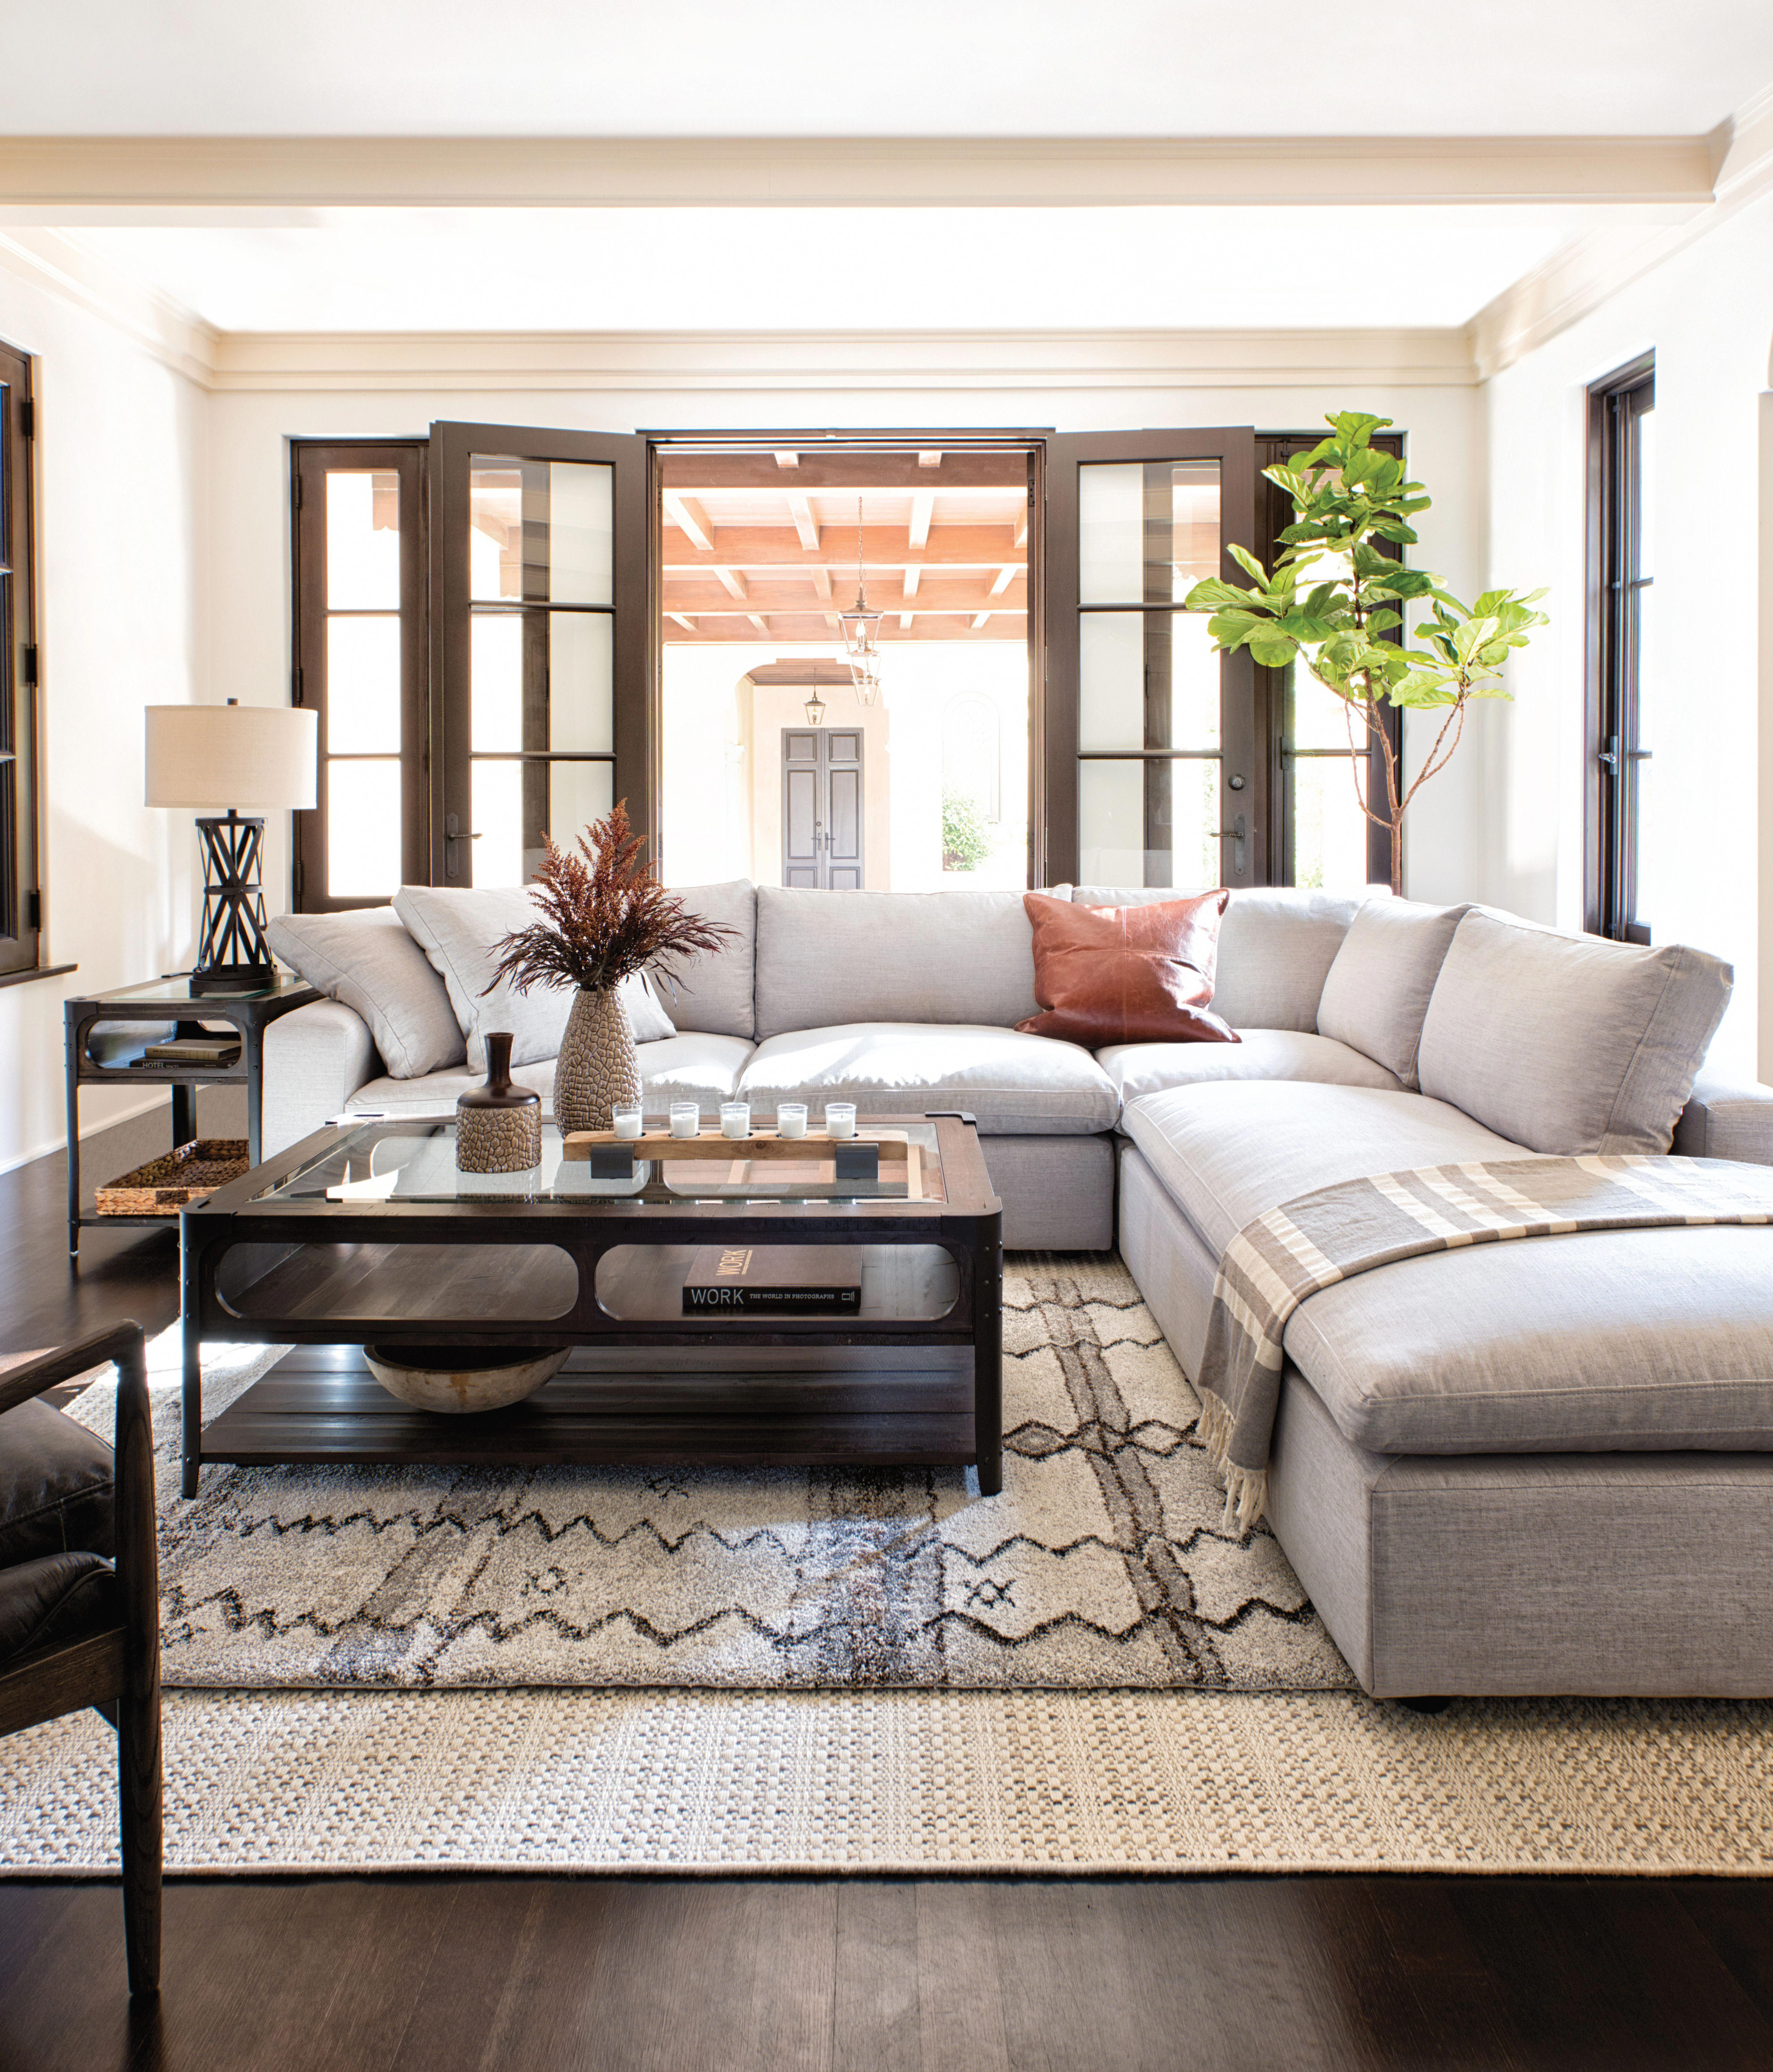 Decorating Your Living Room On A Budget | Cottage Decorating On A ...